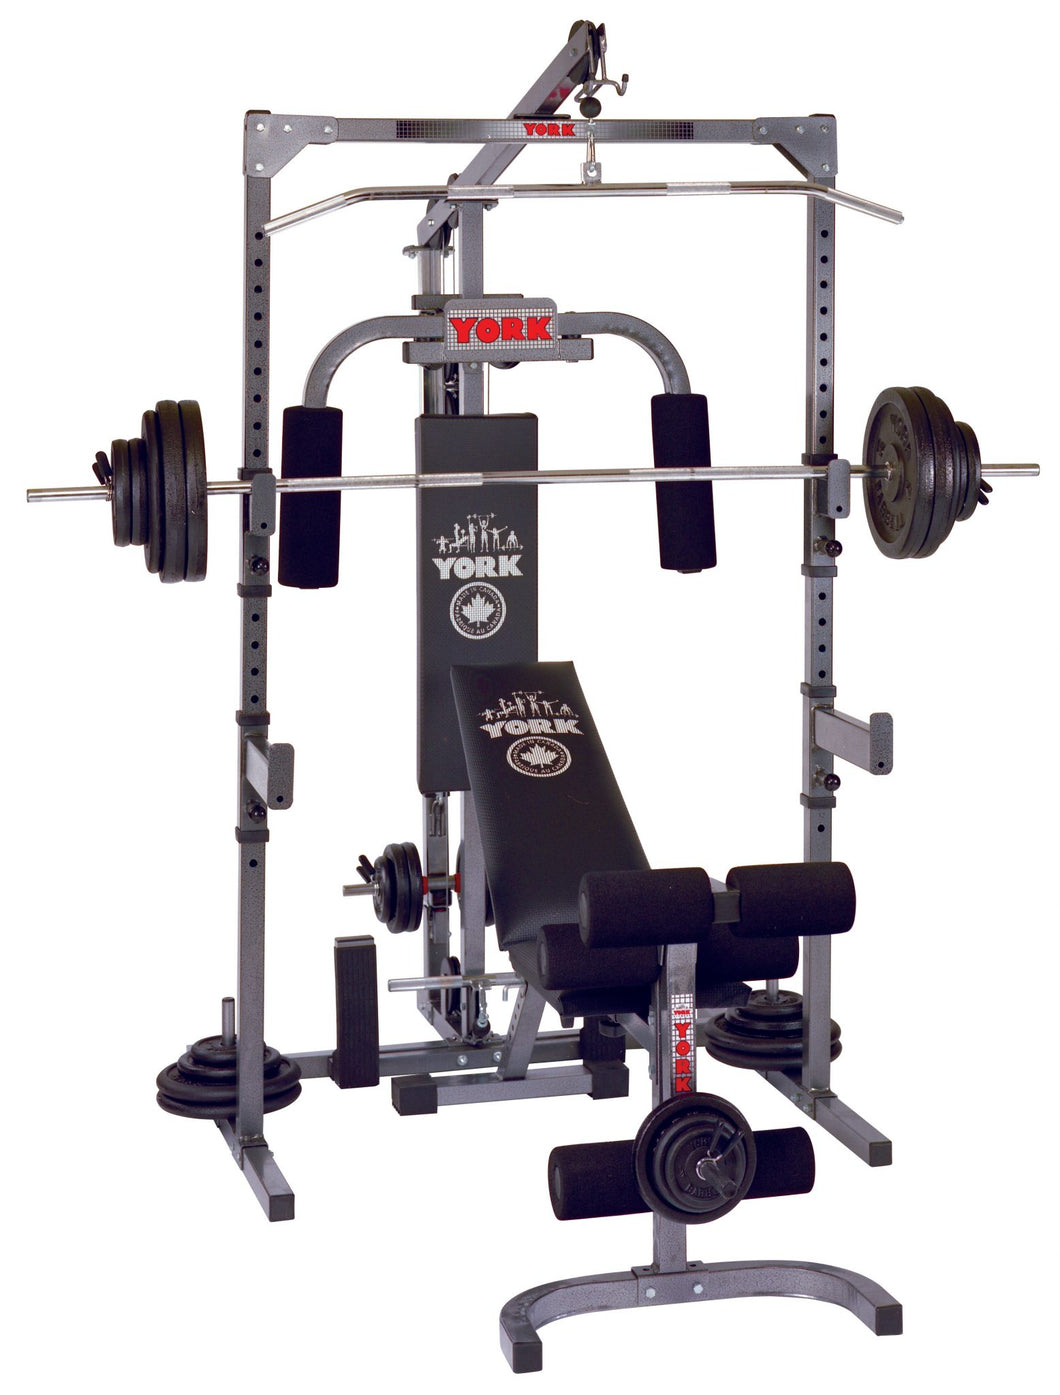 York 3000 Power Station/ Power rack ( made in Canada )